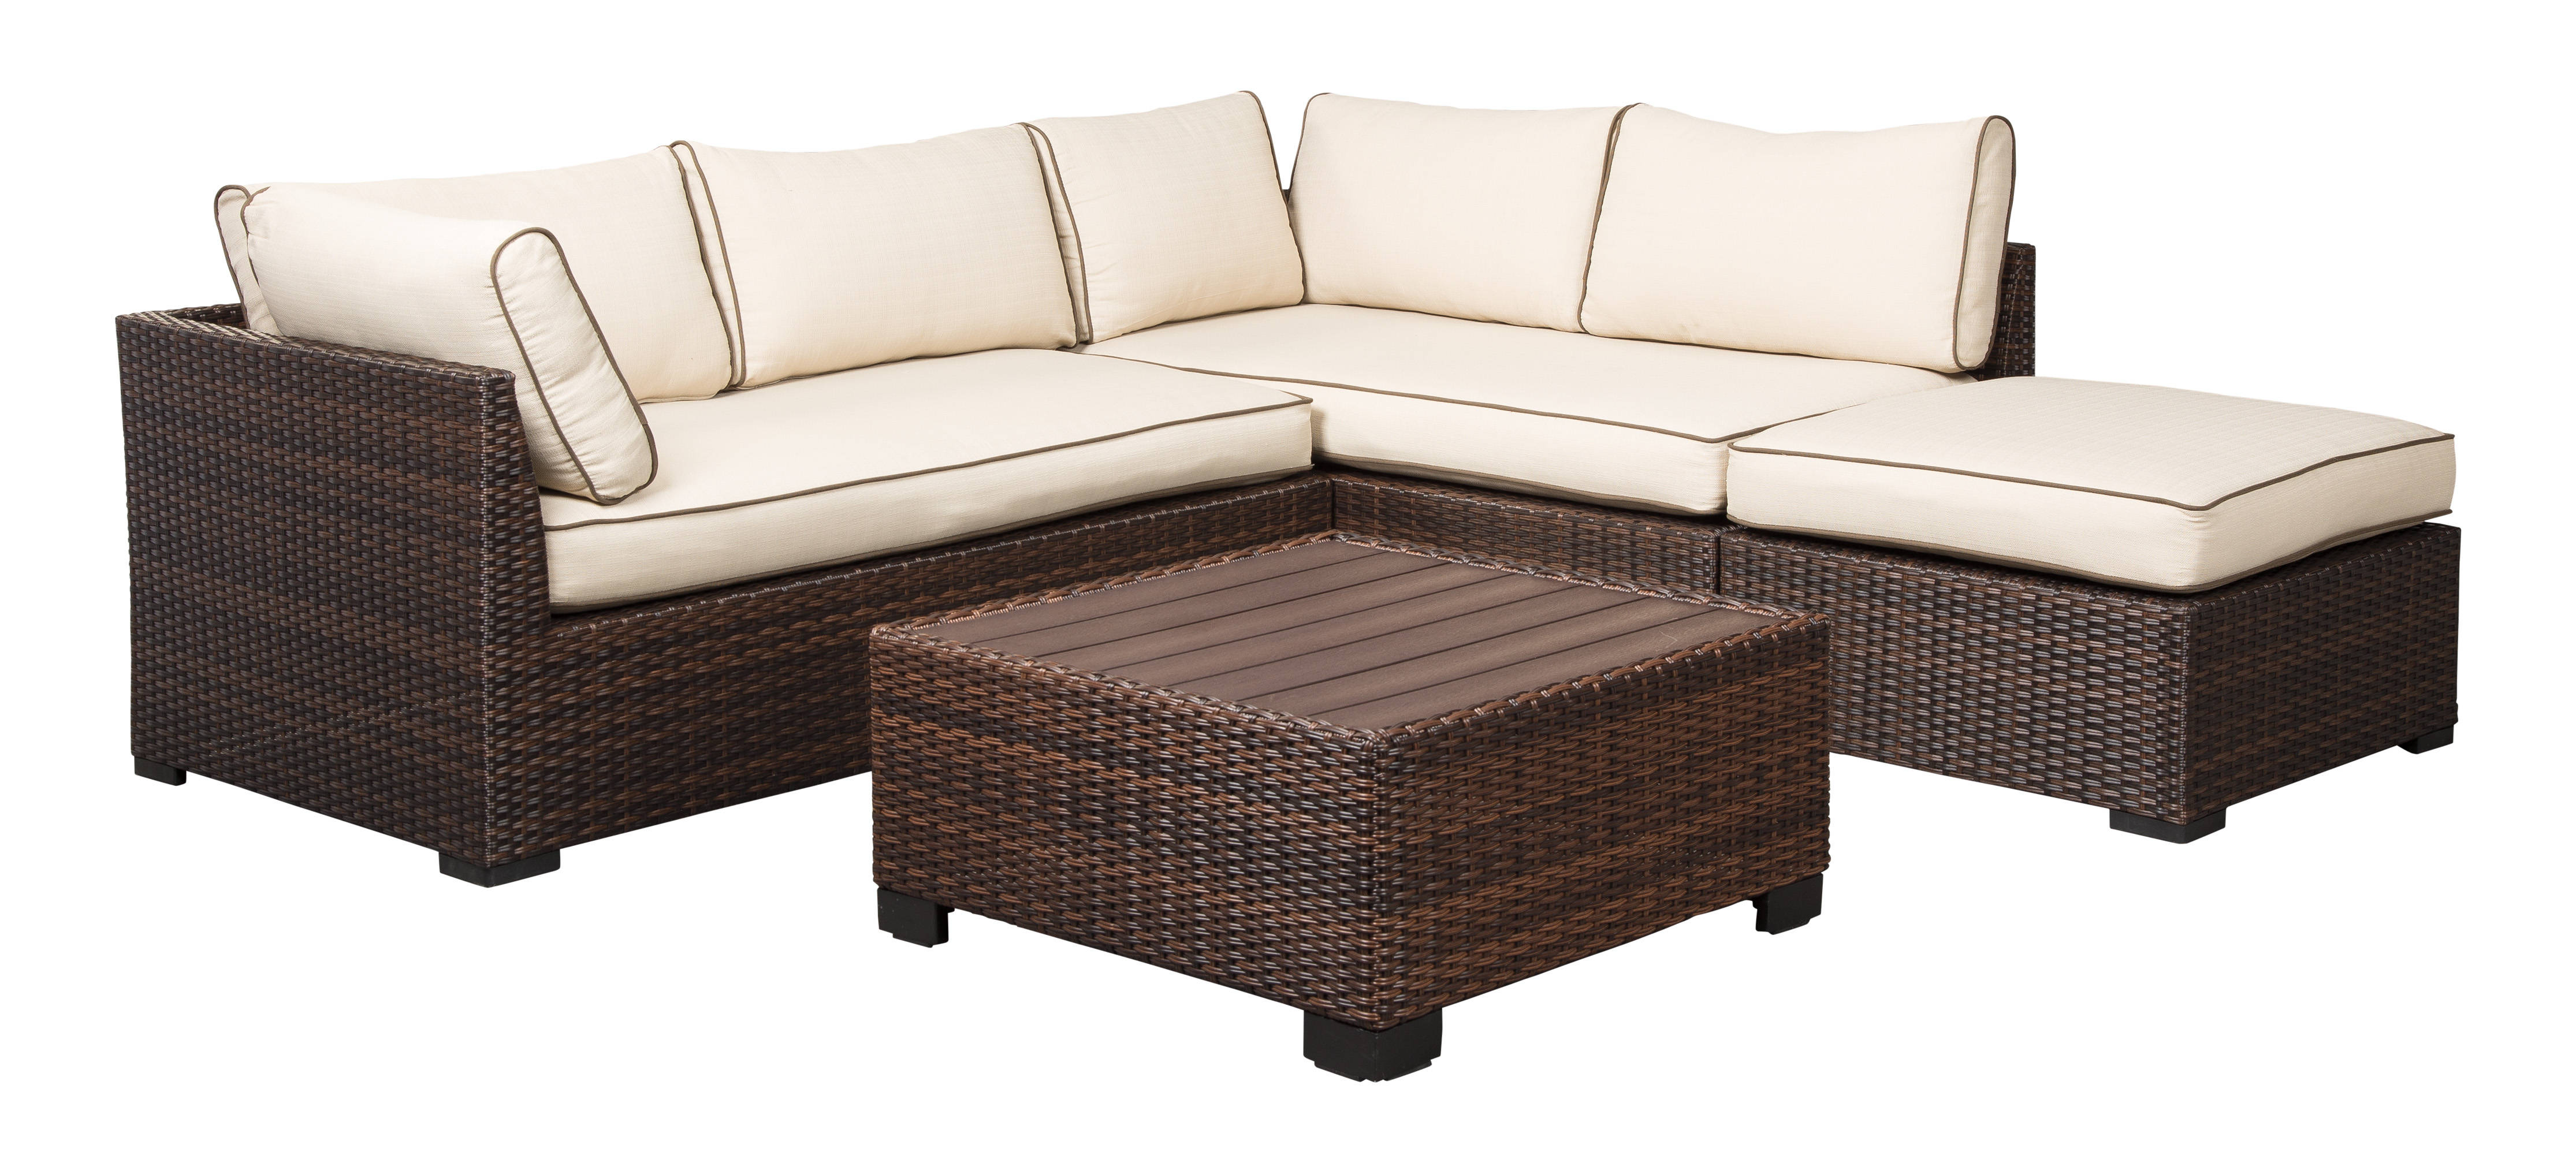 Enjoyable Ashley Furniture Loughran Beige Brown 4Pc Outdoor Sectional Download Free Architecture Designs Aeocymadebymaigaardcom